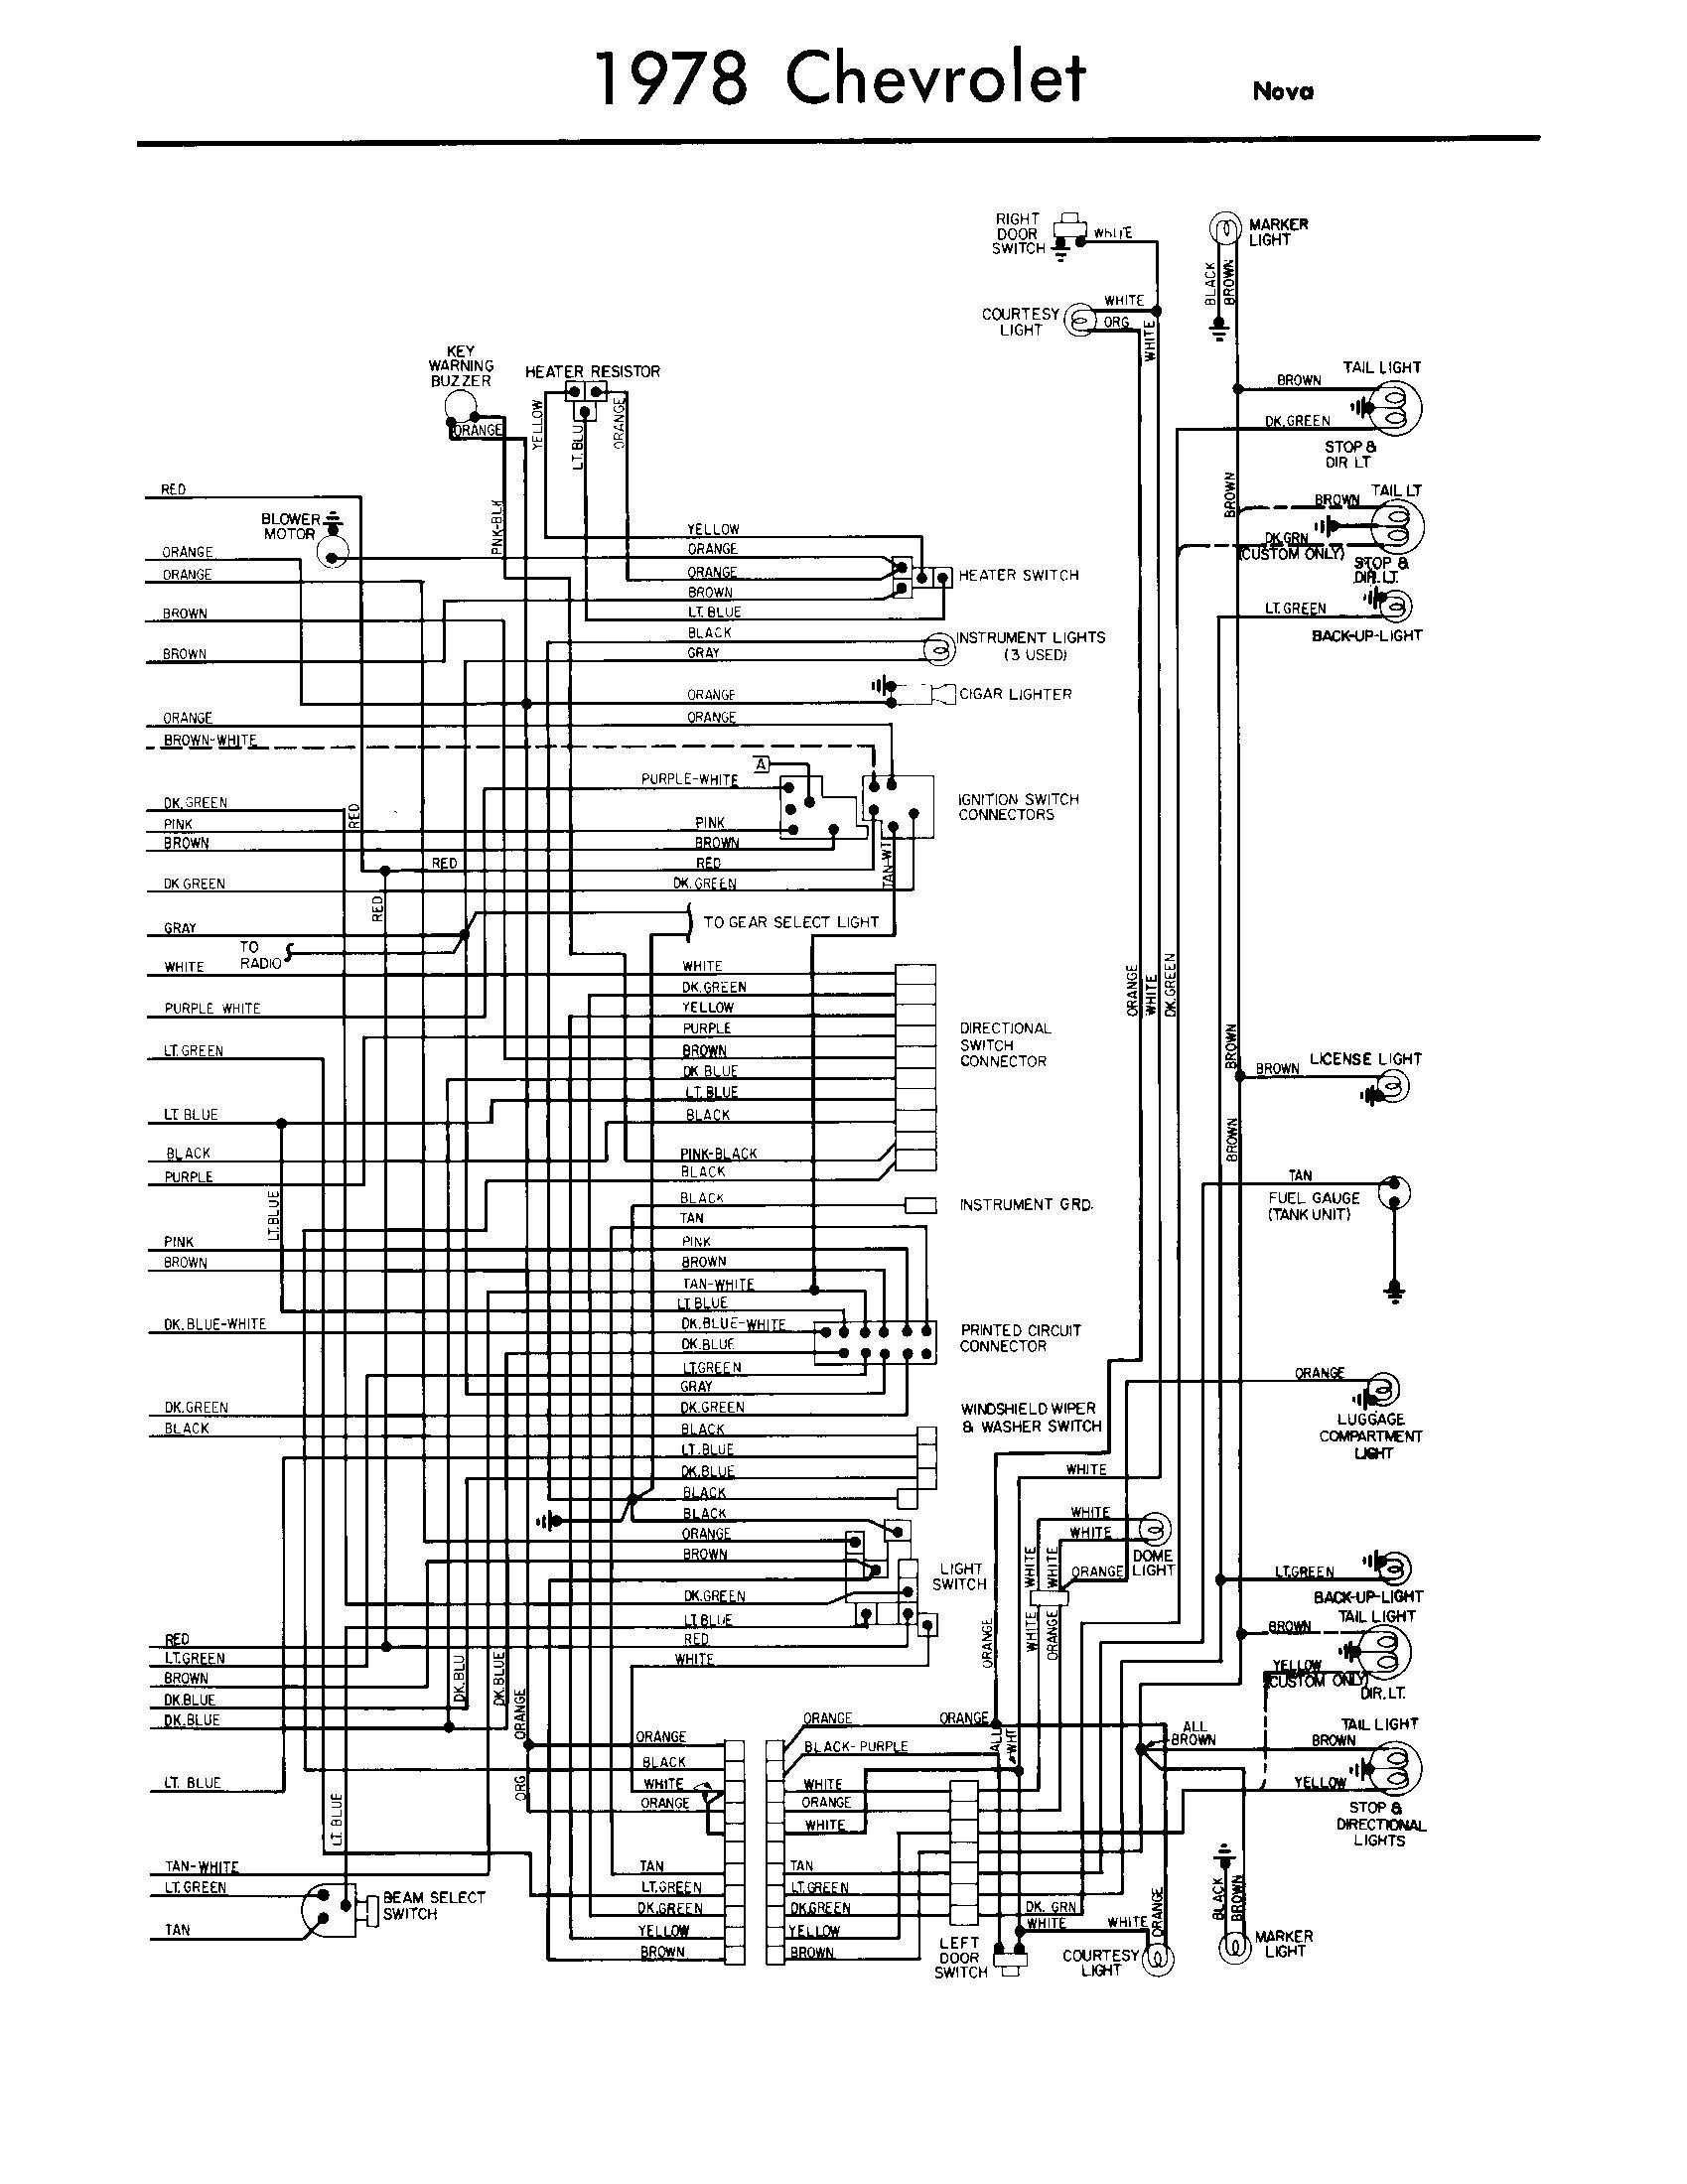 1979 Chevy C10 Wiring Diagram Schematic Diagrams 79 Camaro Third Level 1983